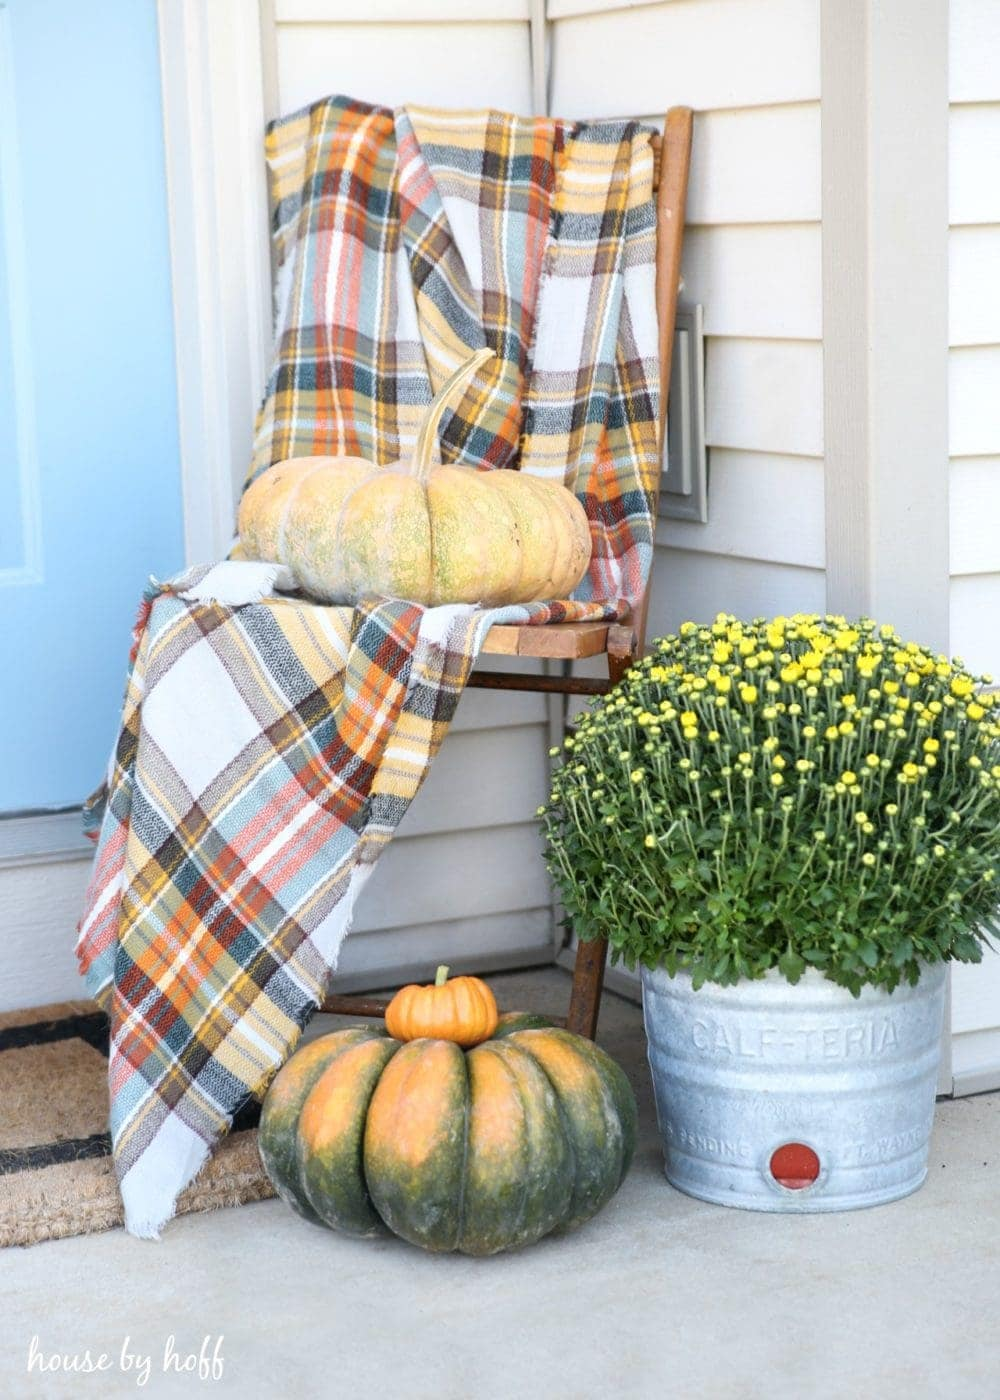 Fall front porch ideas using a plaid scarf draped over a chair with some pumpkins in a corner